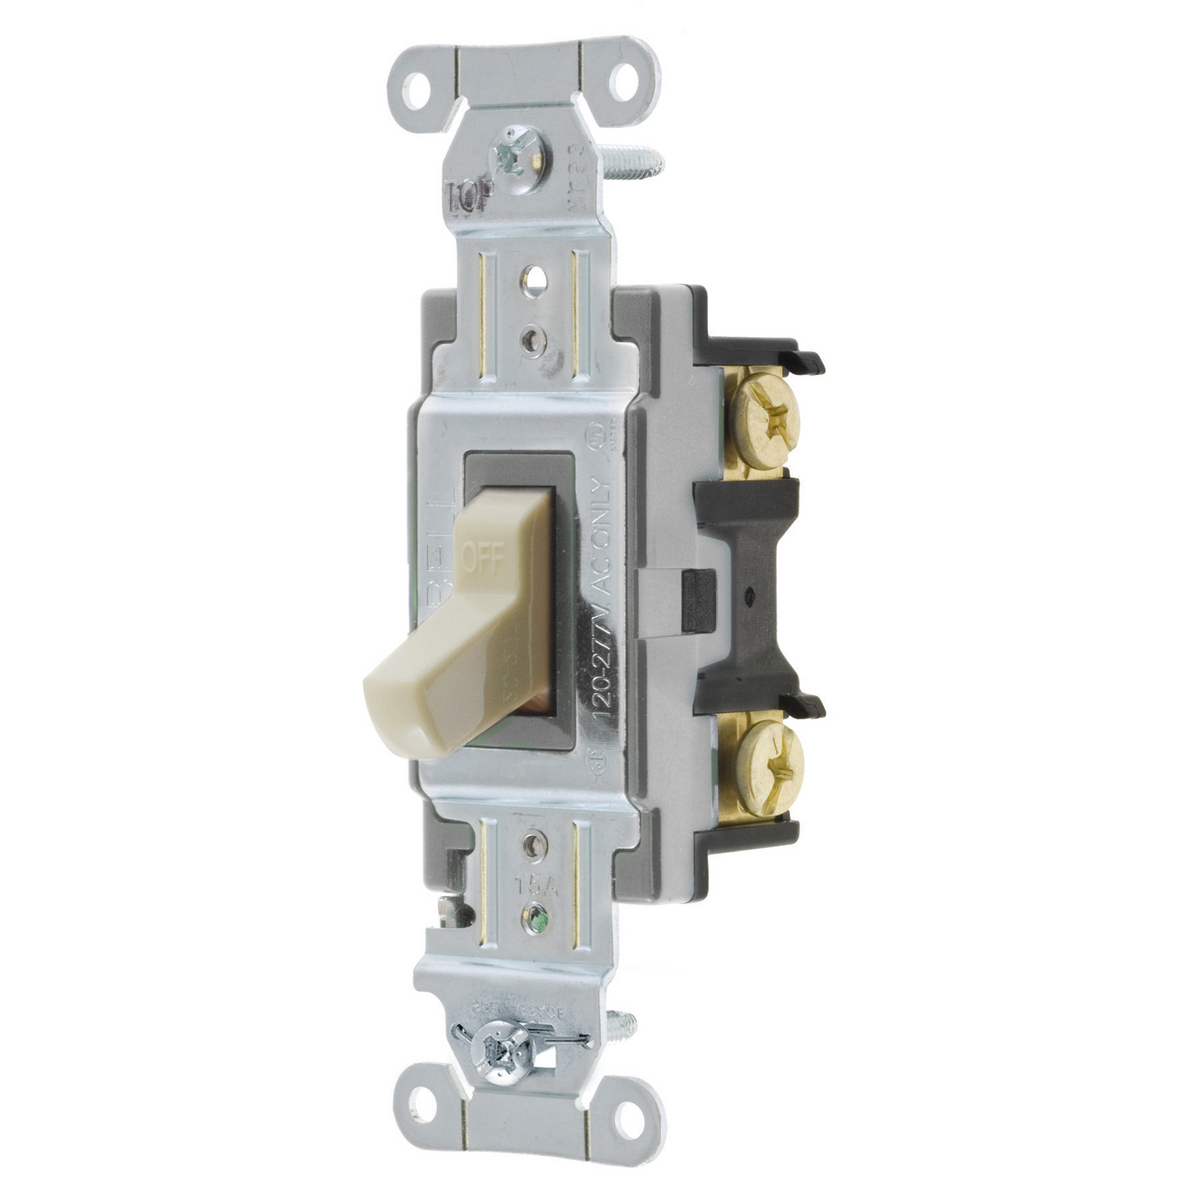 Hubbell CSB115I 15 Amp 120/277 VAC 1-Pole Ivory Toggle Switch